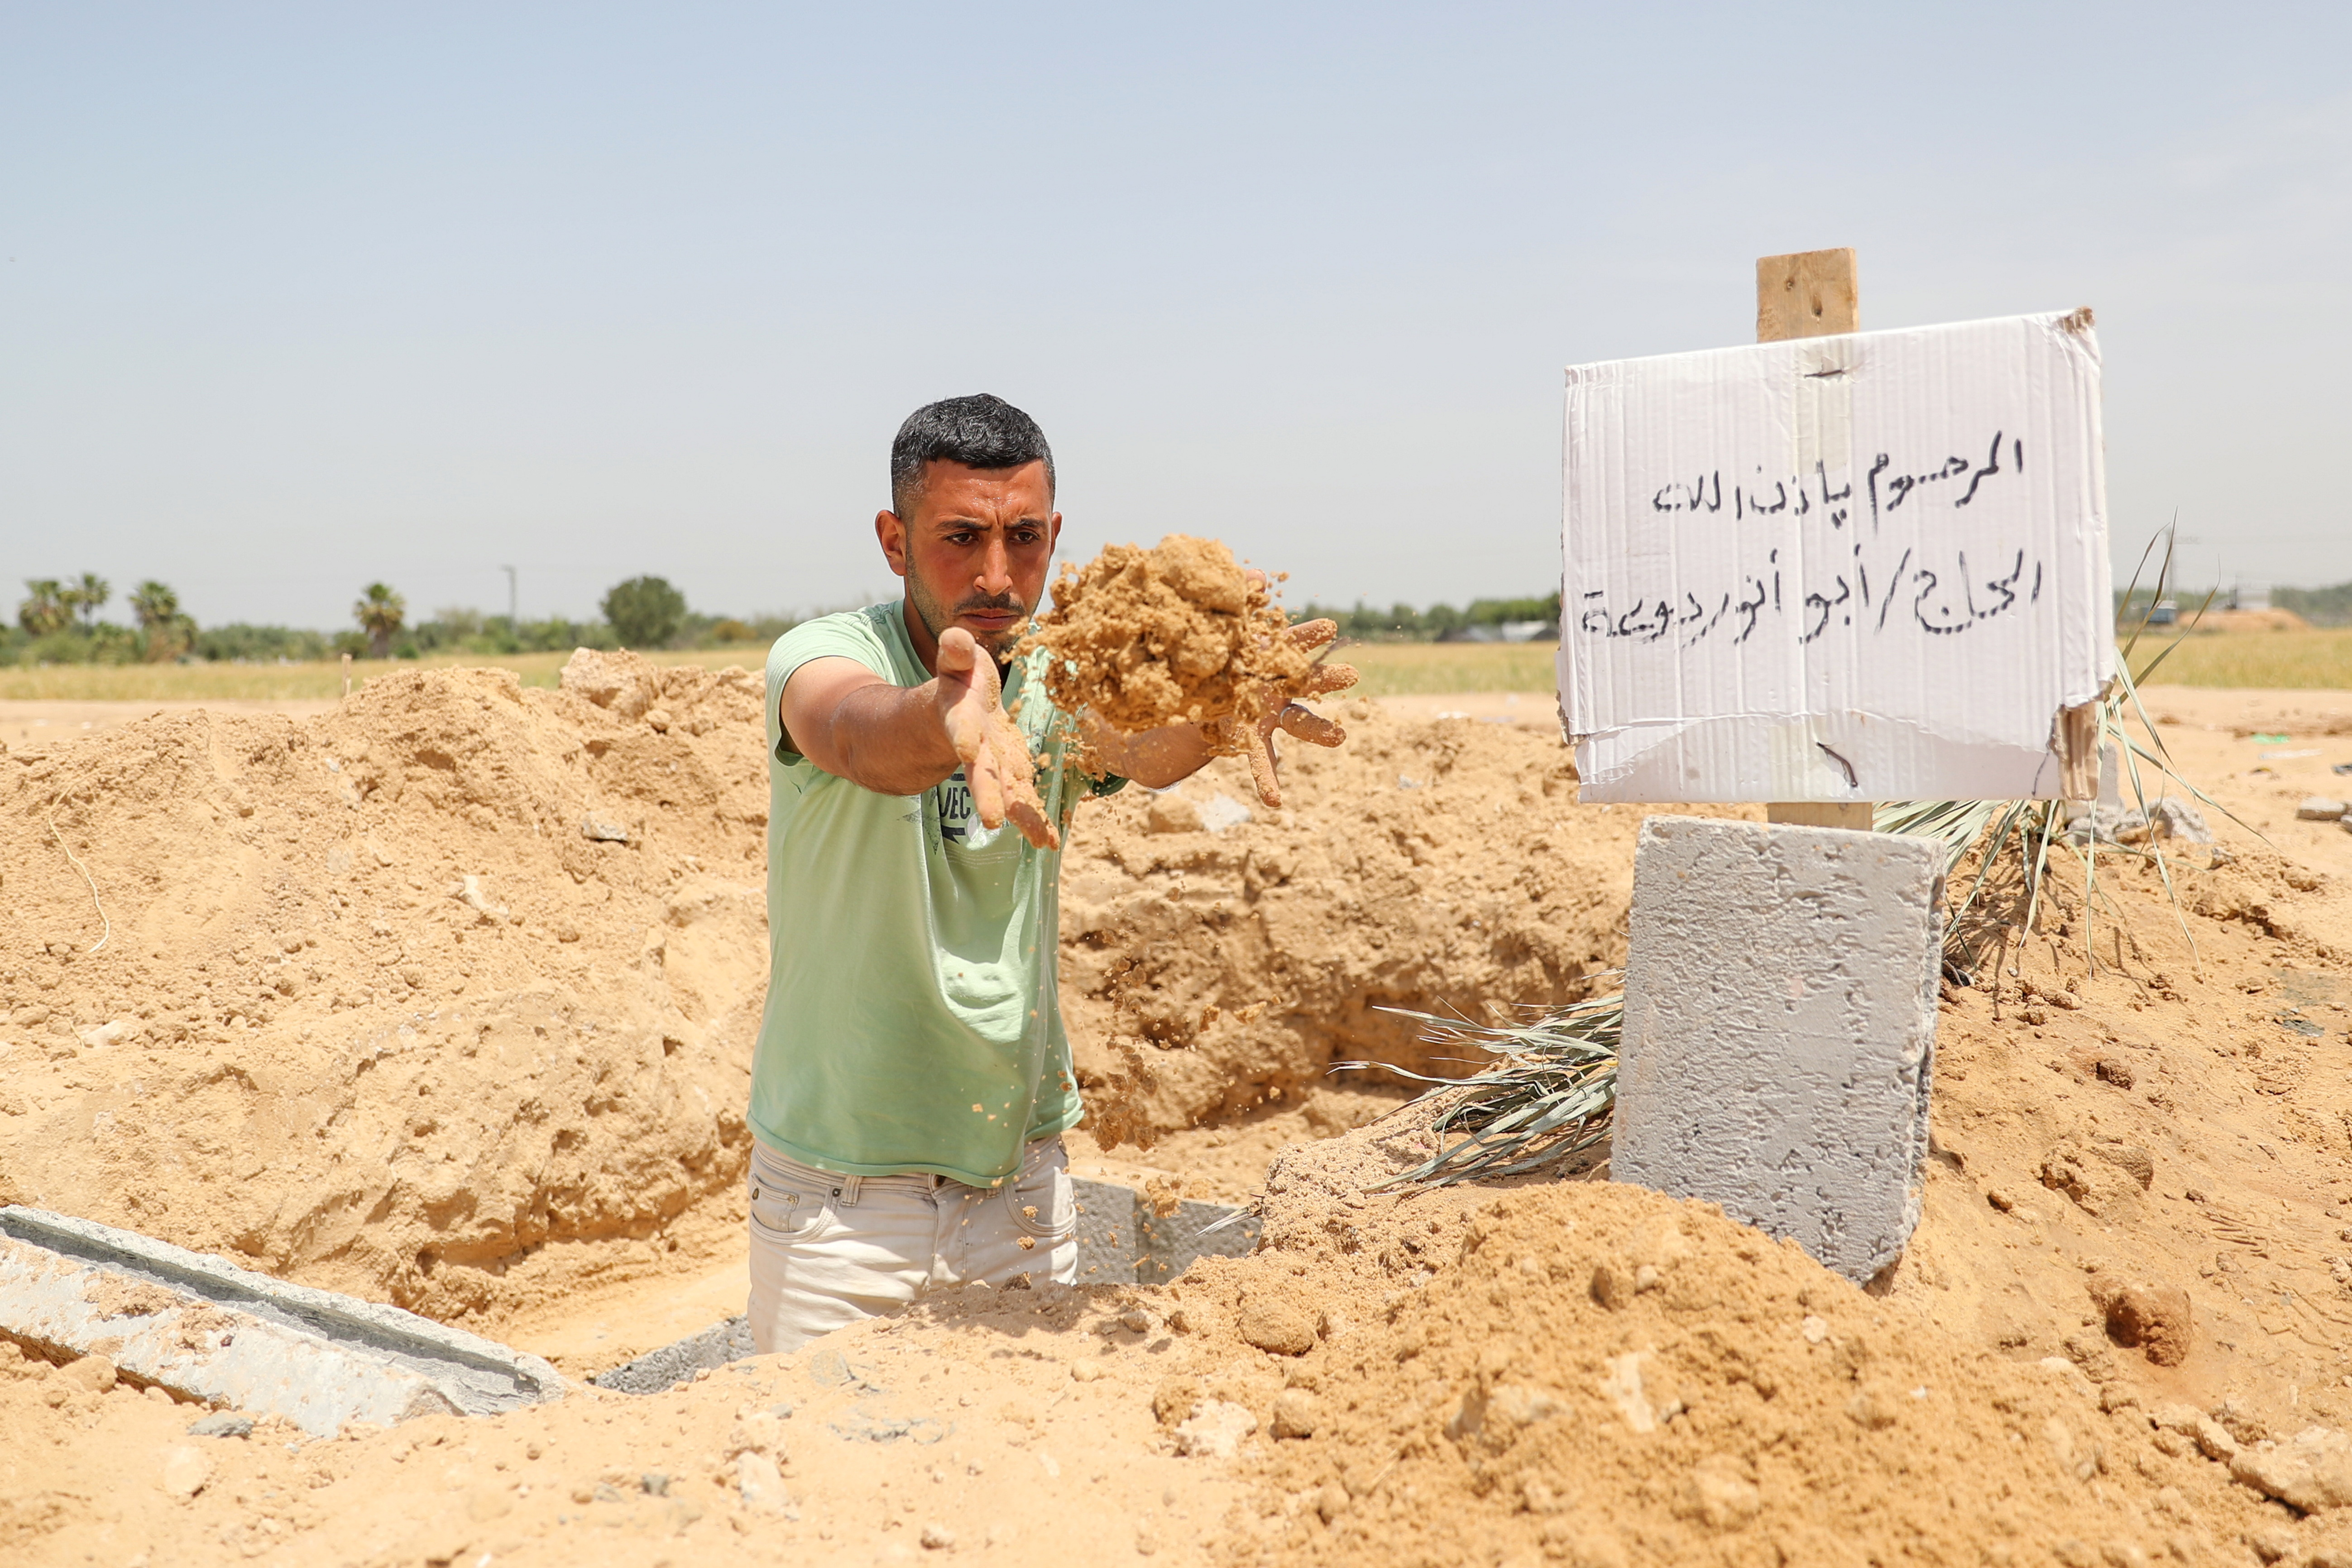 Palestinian worker Mohammad al-Haresh, 30, digs a grave for a coronavirus disease (COVID-19) victim, at a cemetery, east of Gaza City April 20, 2021. Picture taken April 20, 2021. REUTERS/Mohammed Salem